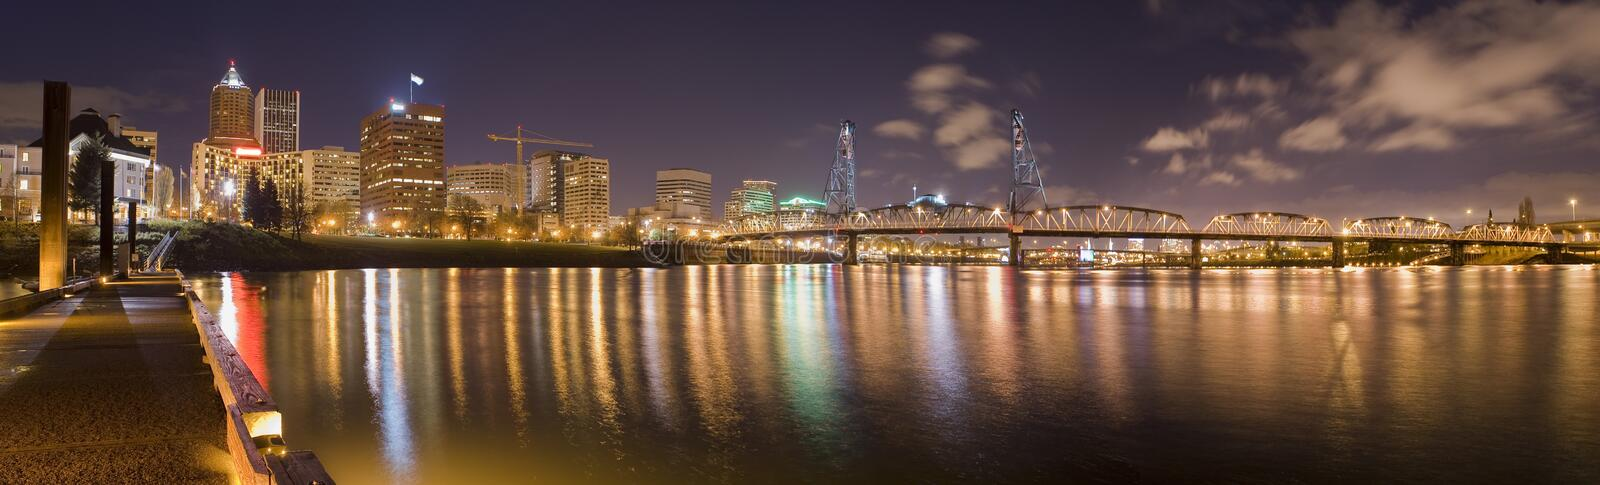 Panorama de Portland, Oregon imagem de stock royalty free